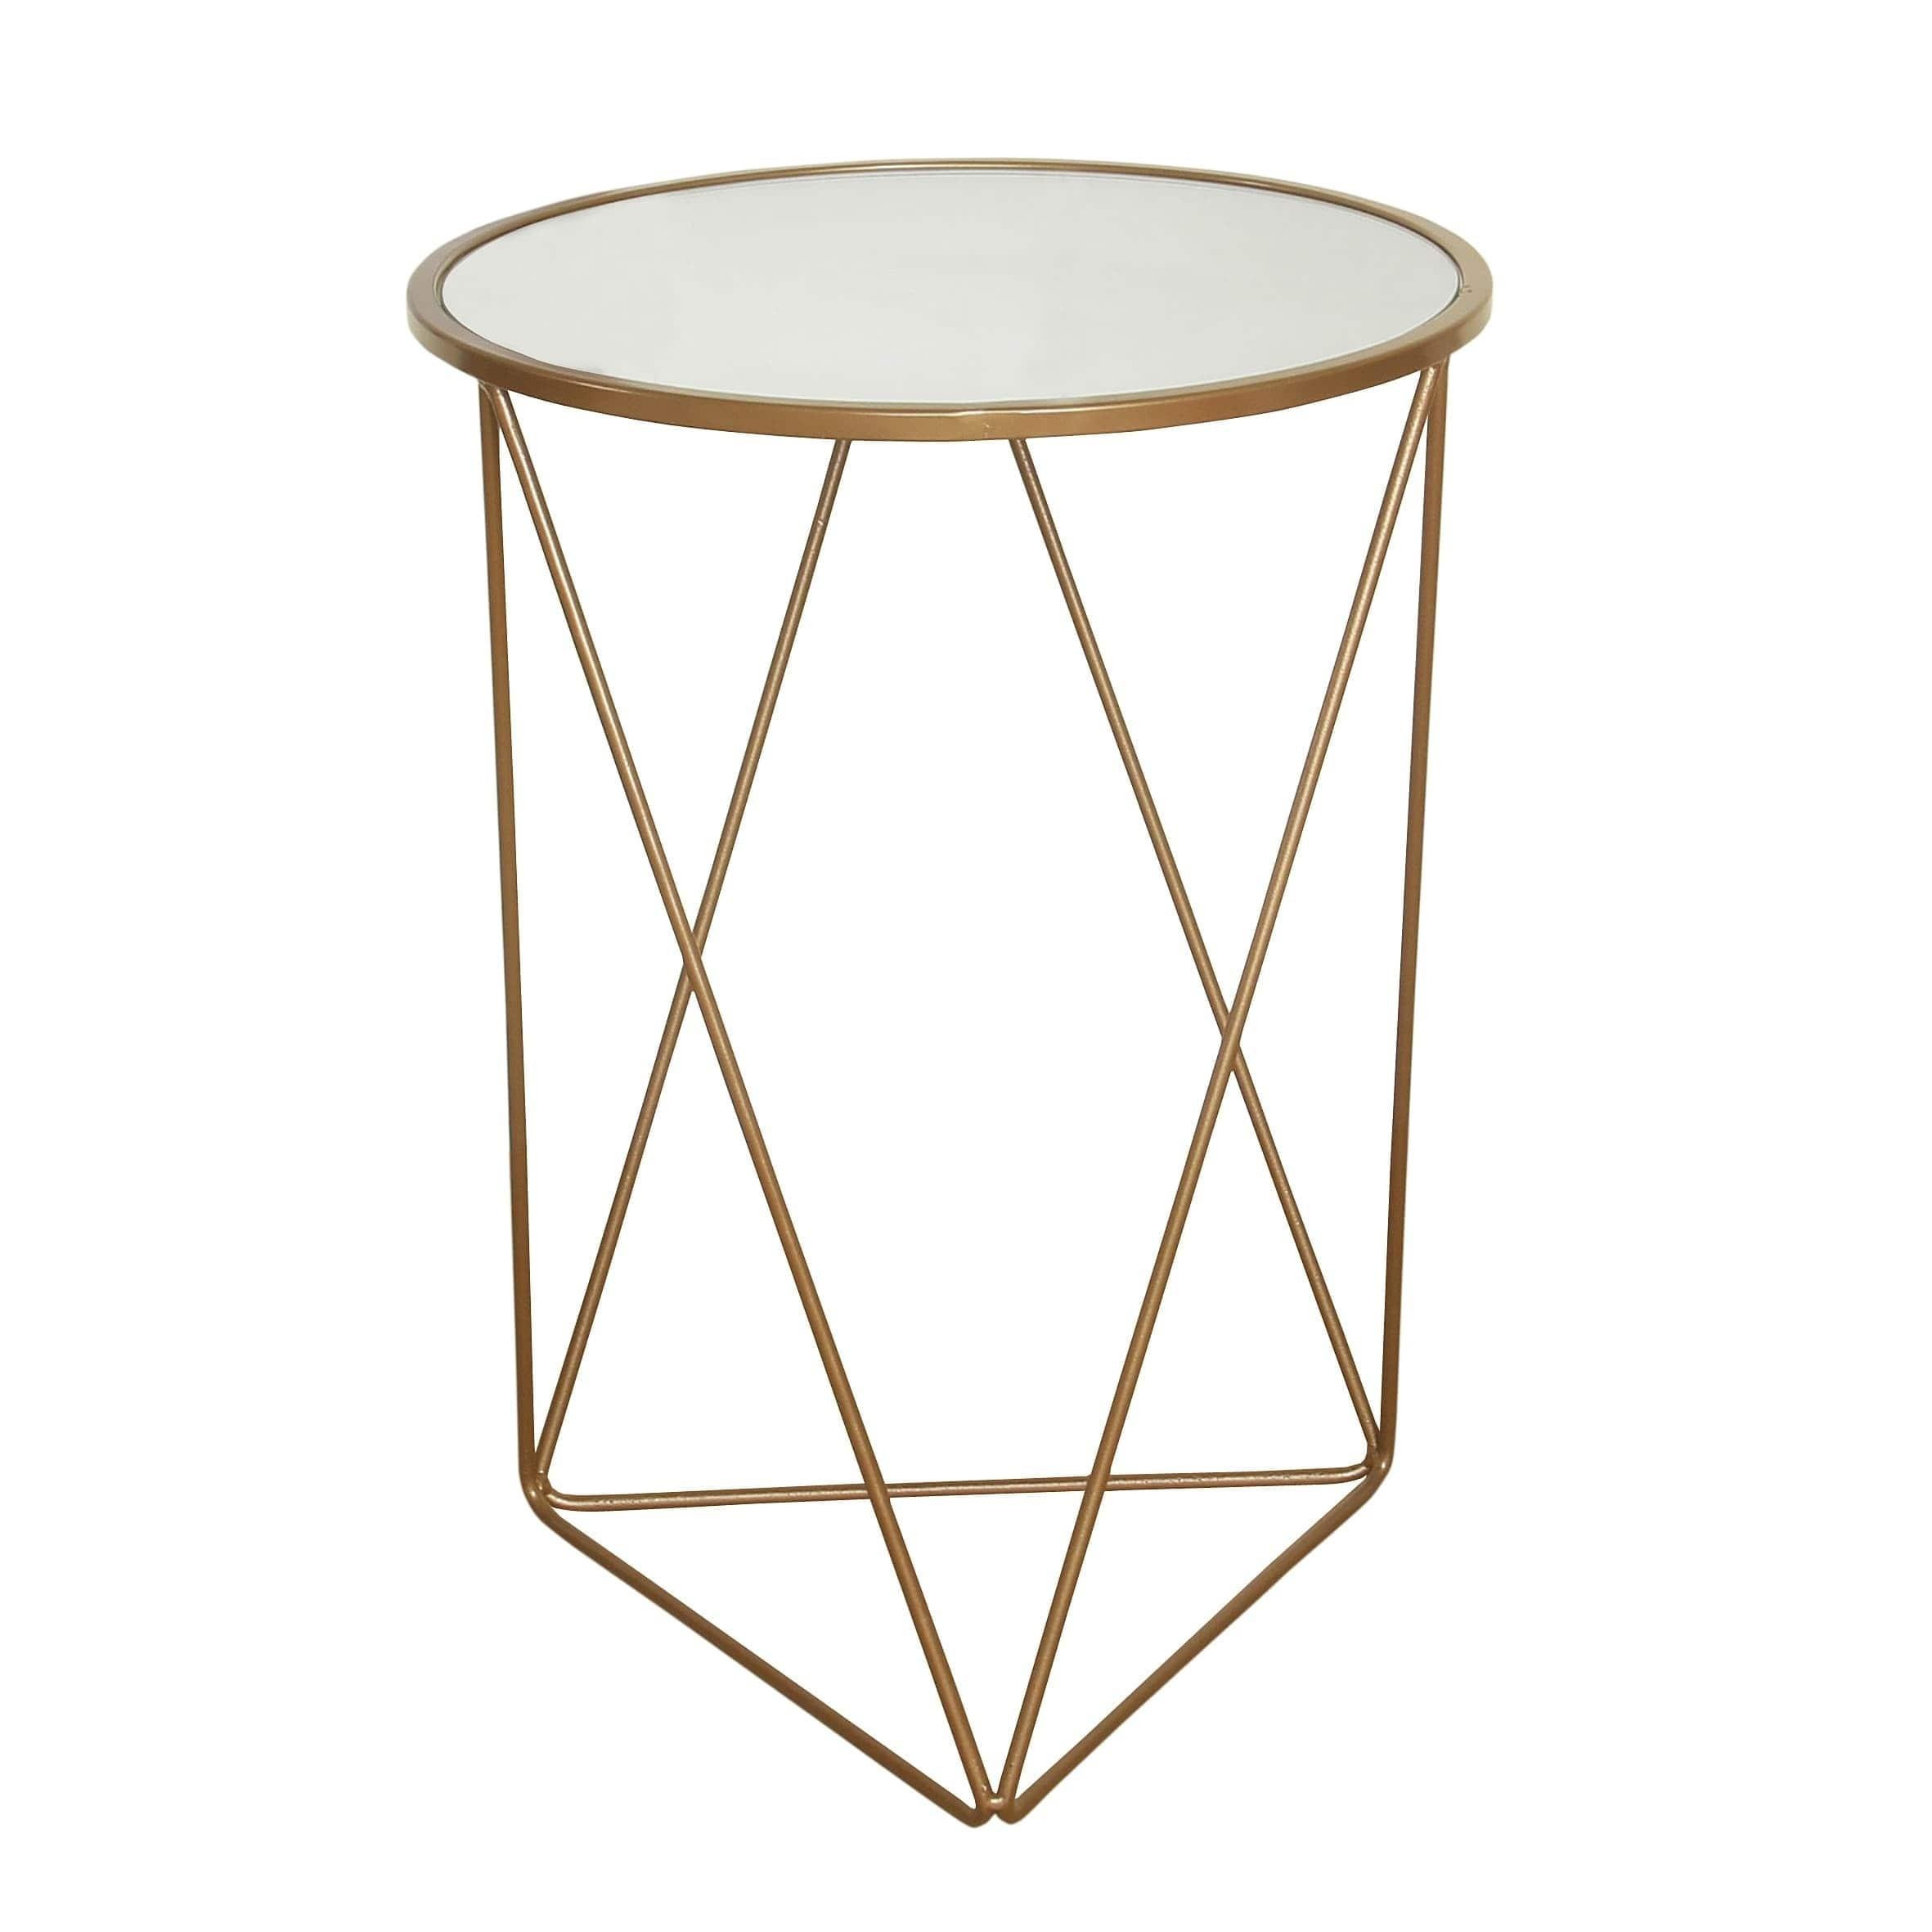 homepop metal accent table triangle gold base round glass top free shipping today concrete dining rustic cube tables ikea cool patio furniture narrow end for living room